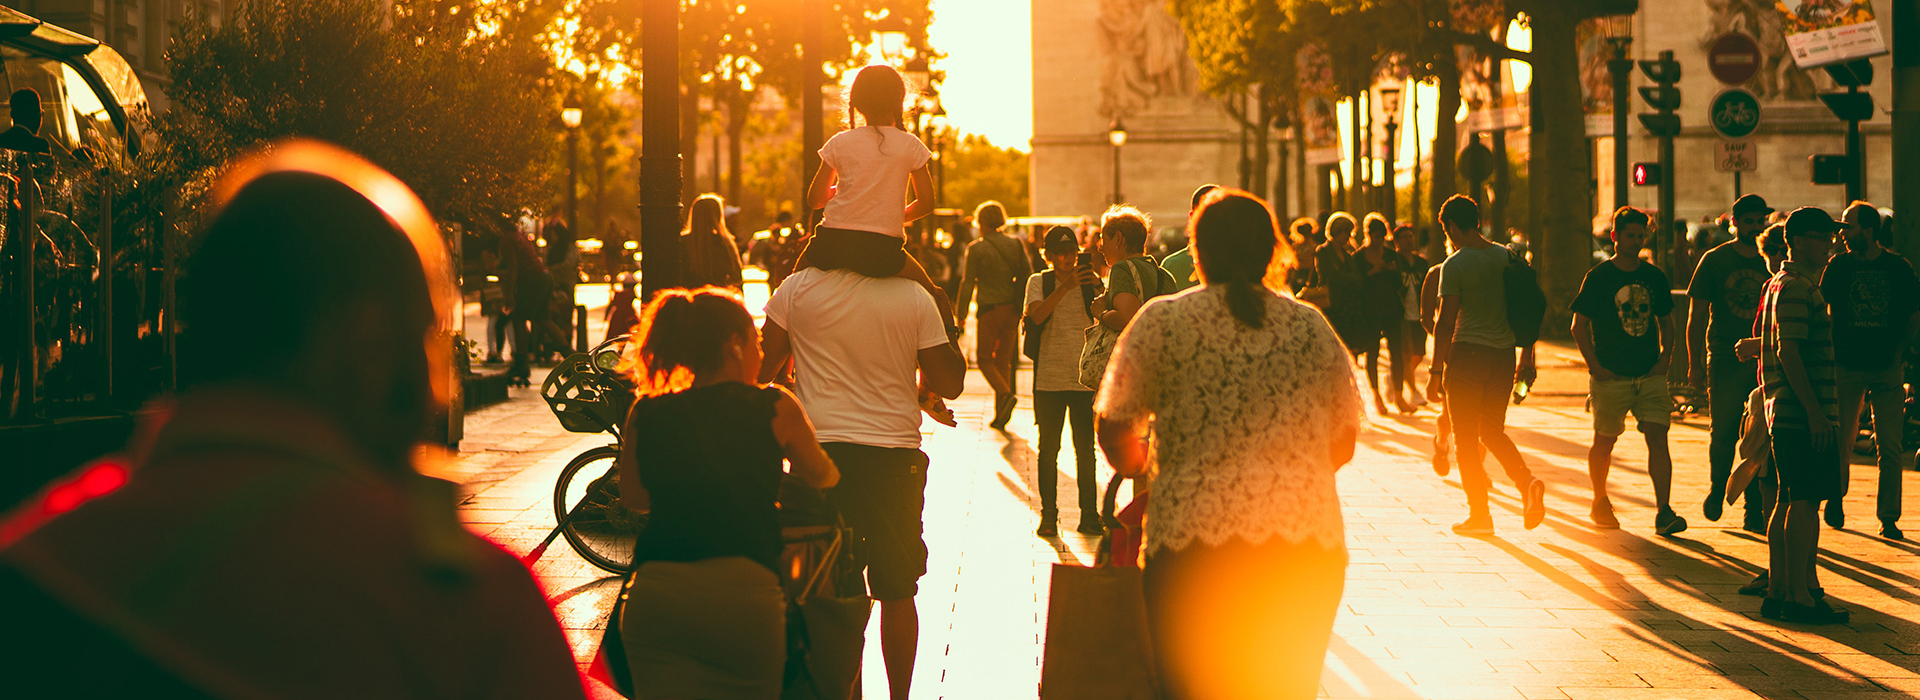 Groups of people walking on a street with the sunset